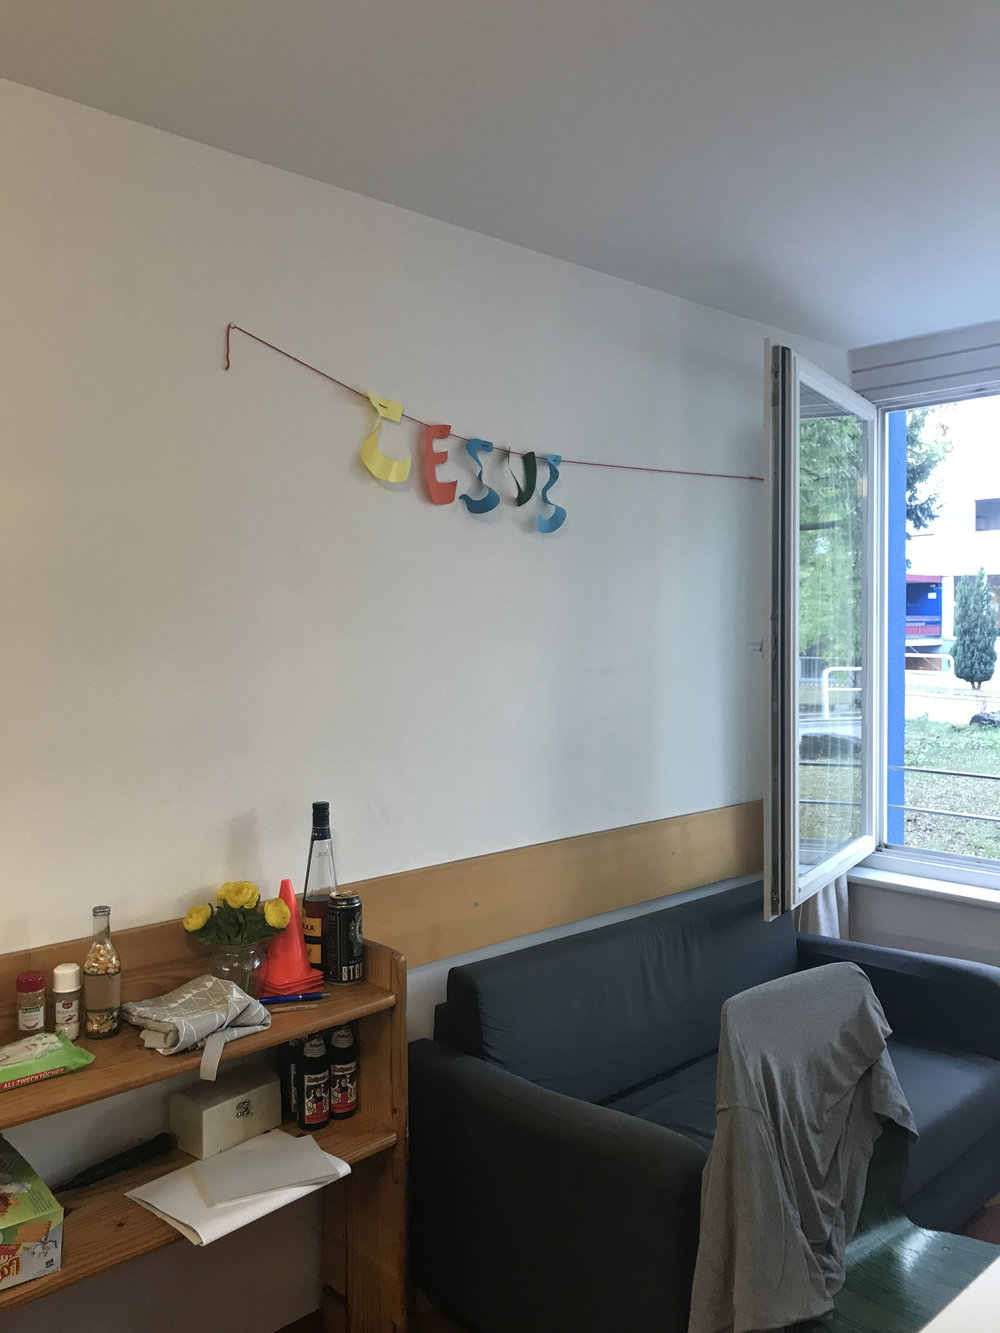 A banner in the common room that I want to know the story behind.